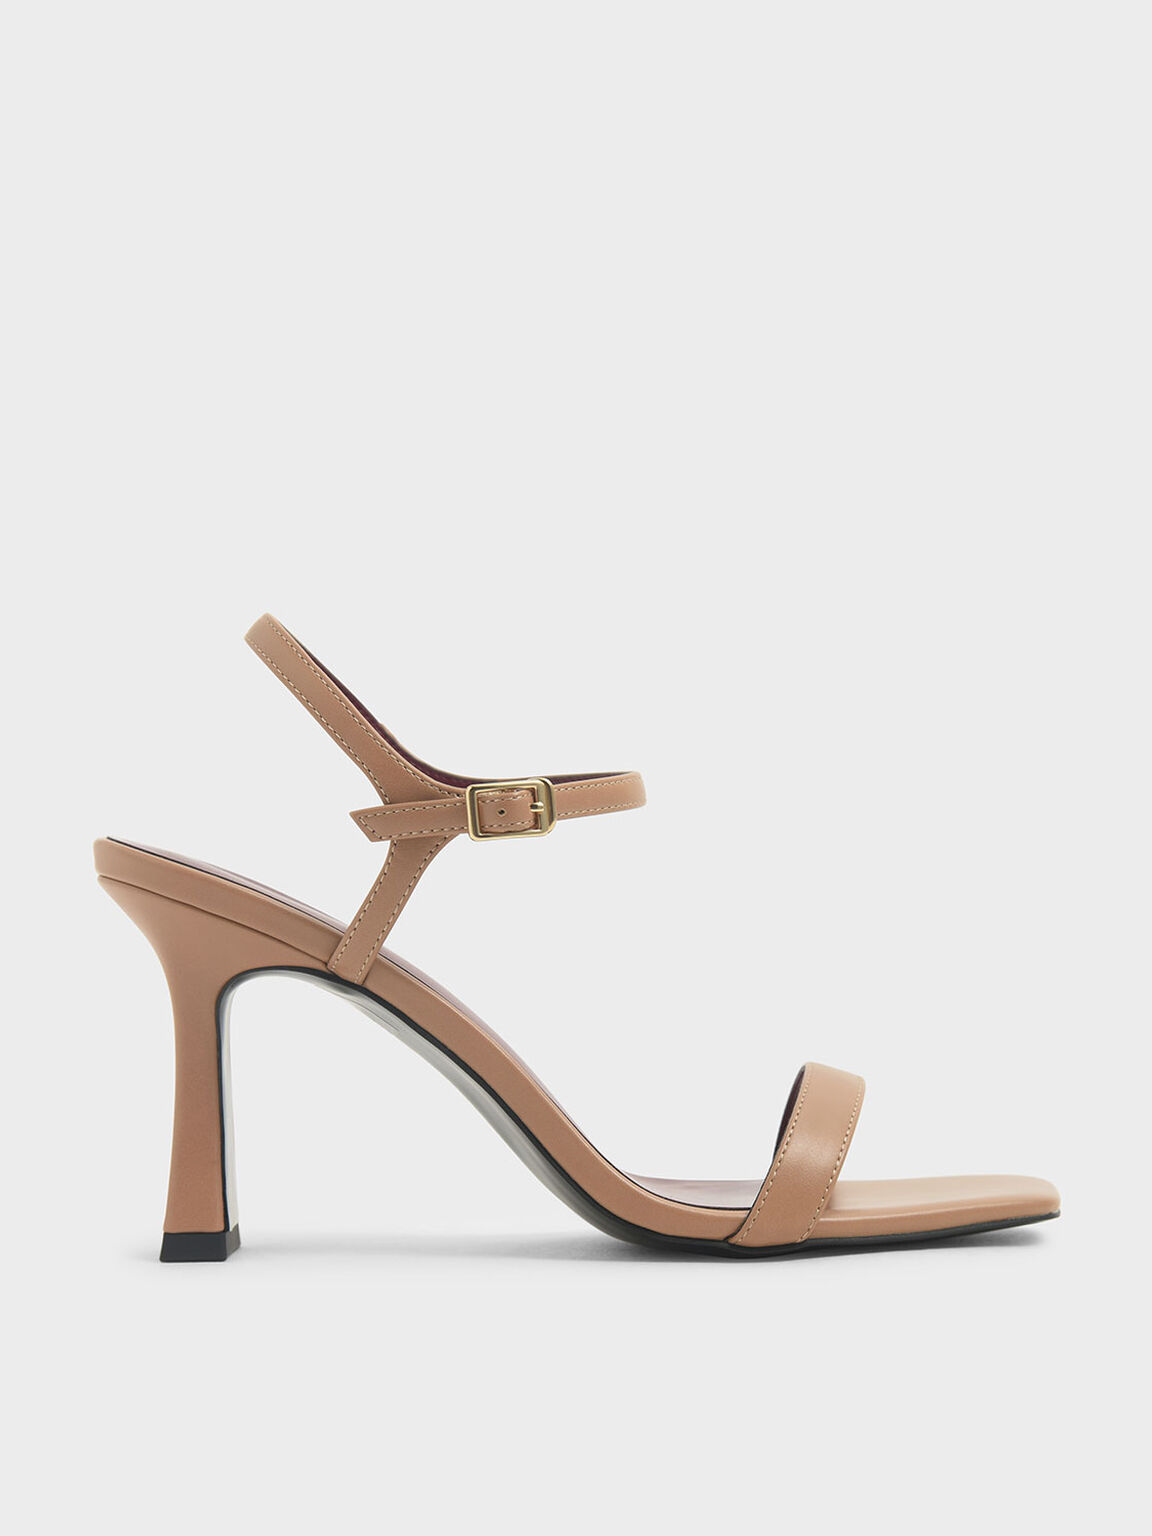 Sculptural Heel Sandals, Nude, hi-res